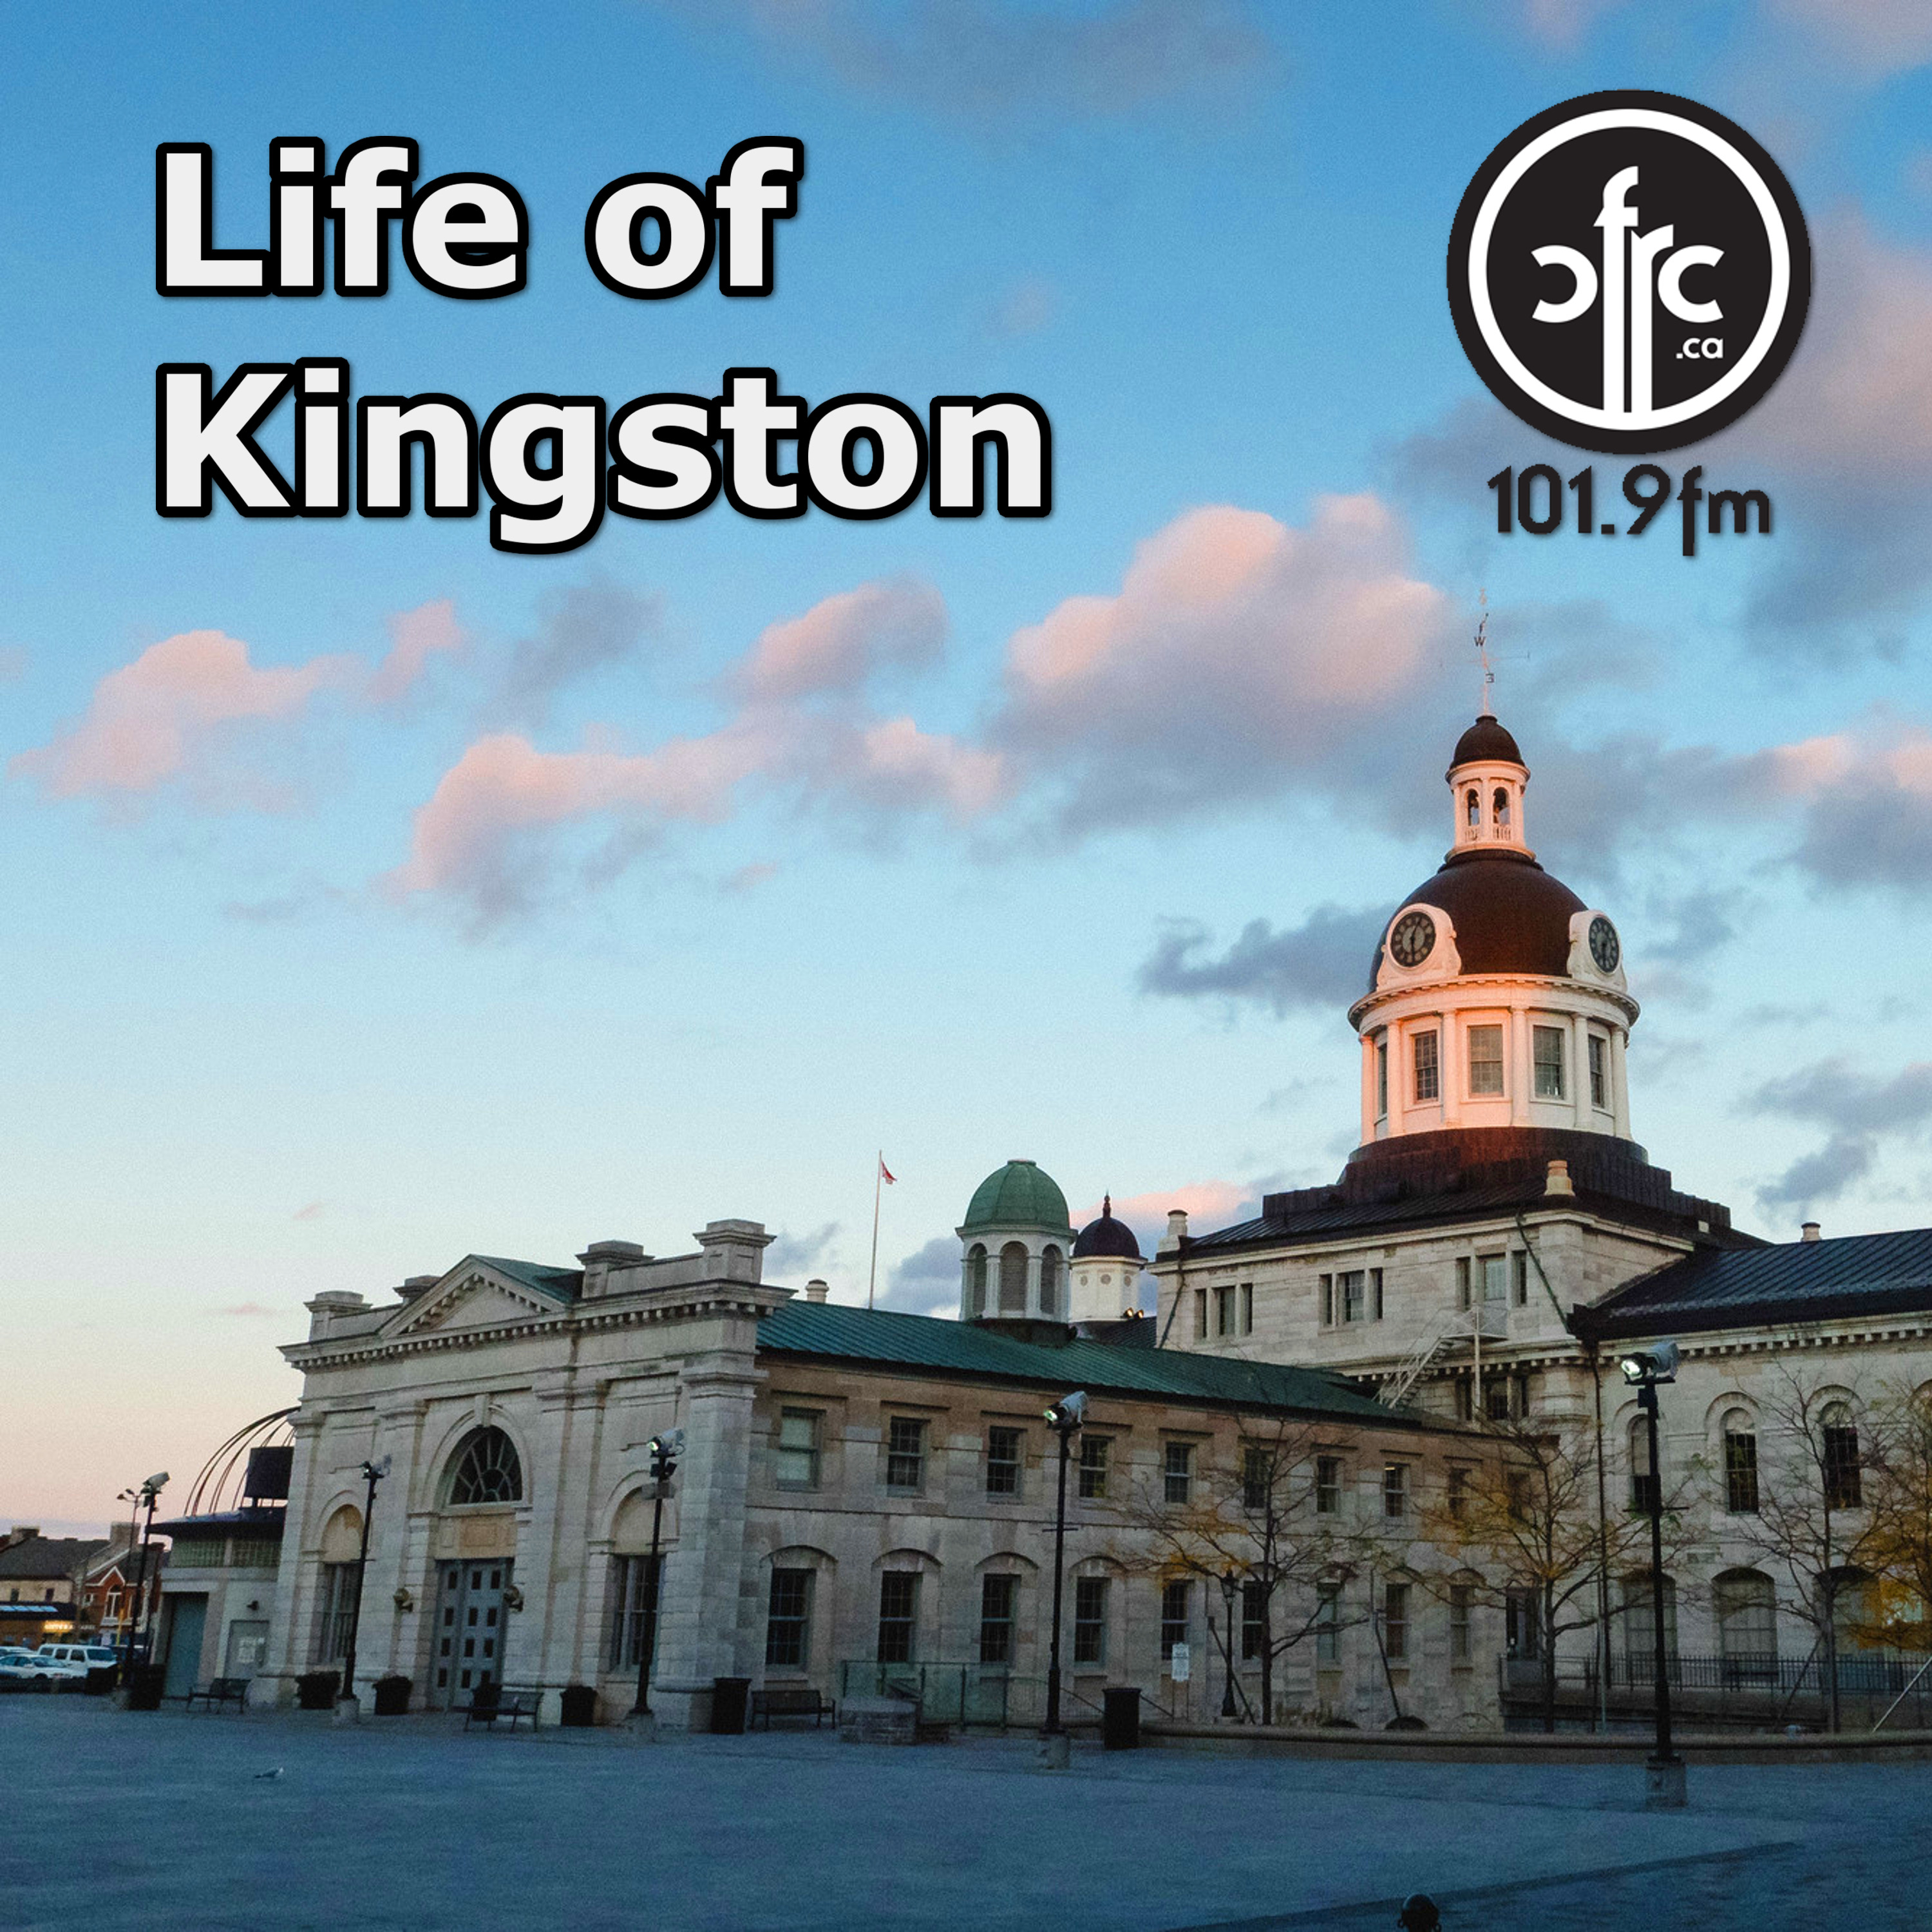 Life of Kingston - CFRC Podcast Network